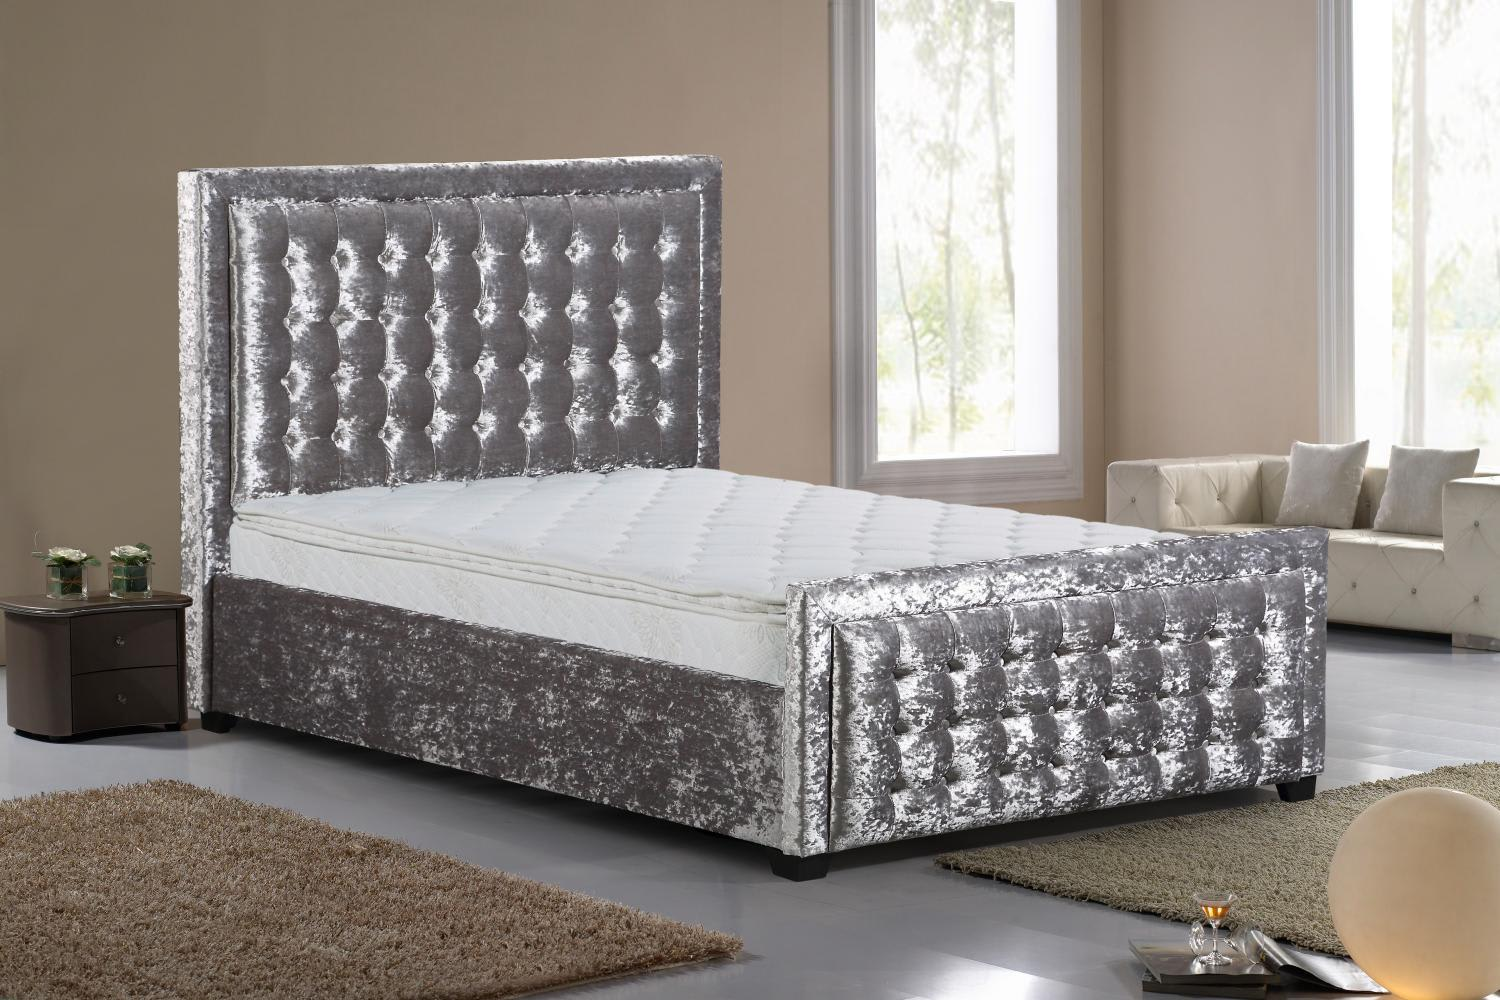 Pont furnishings ltd furniture for home and office in for Decor home furniture ltd